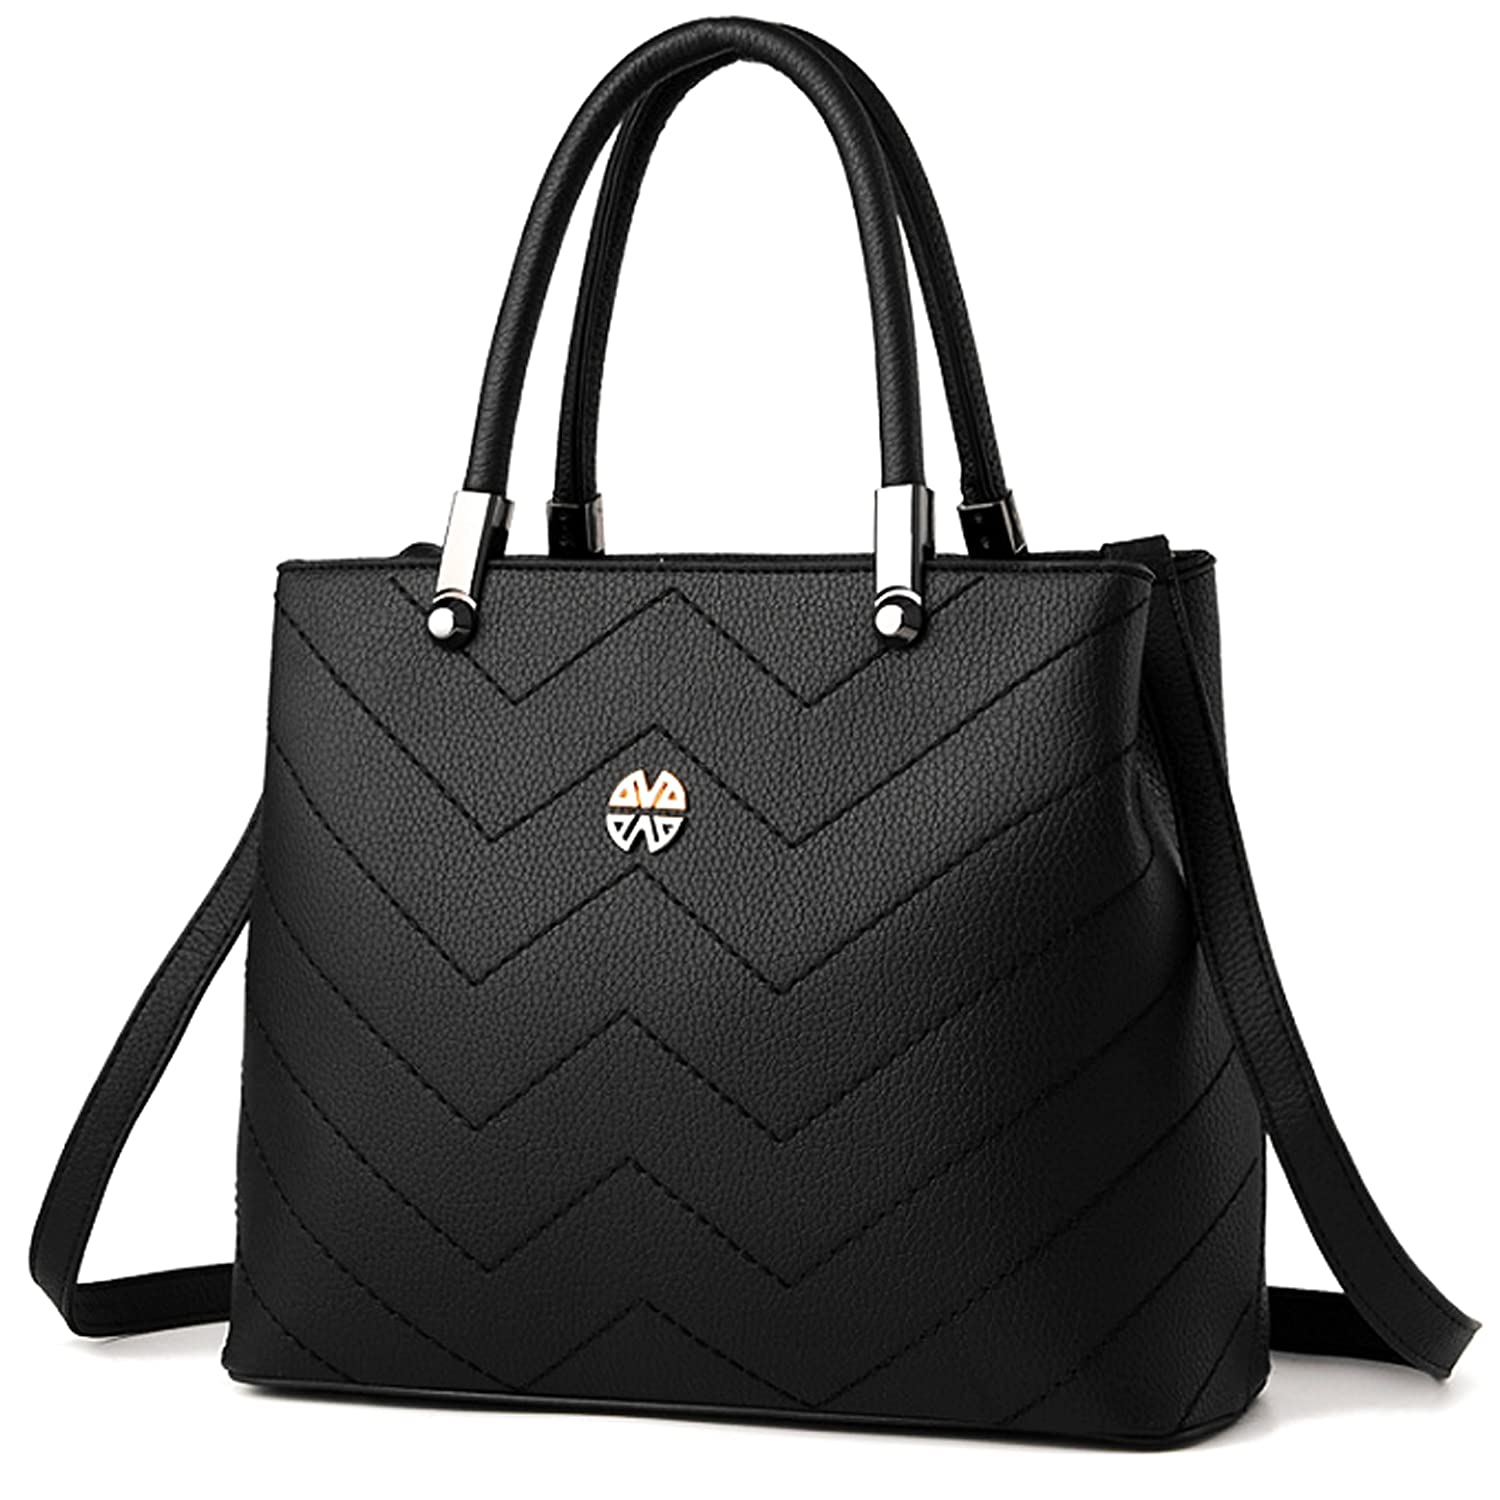 Amazon.com: Women's Handbags & Purses - Bags, Packs & Accessories ...